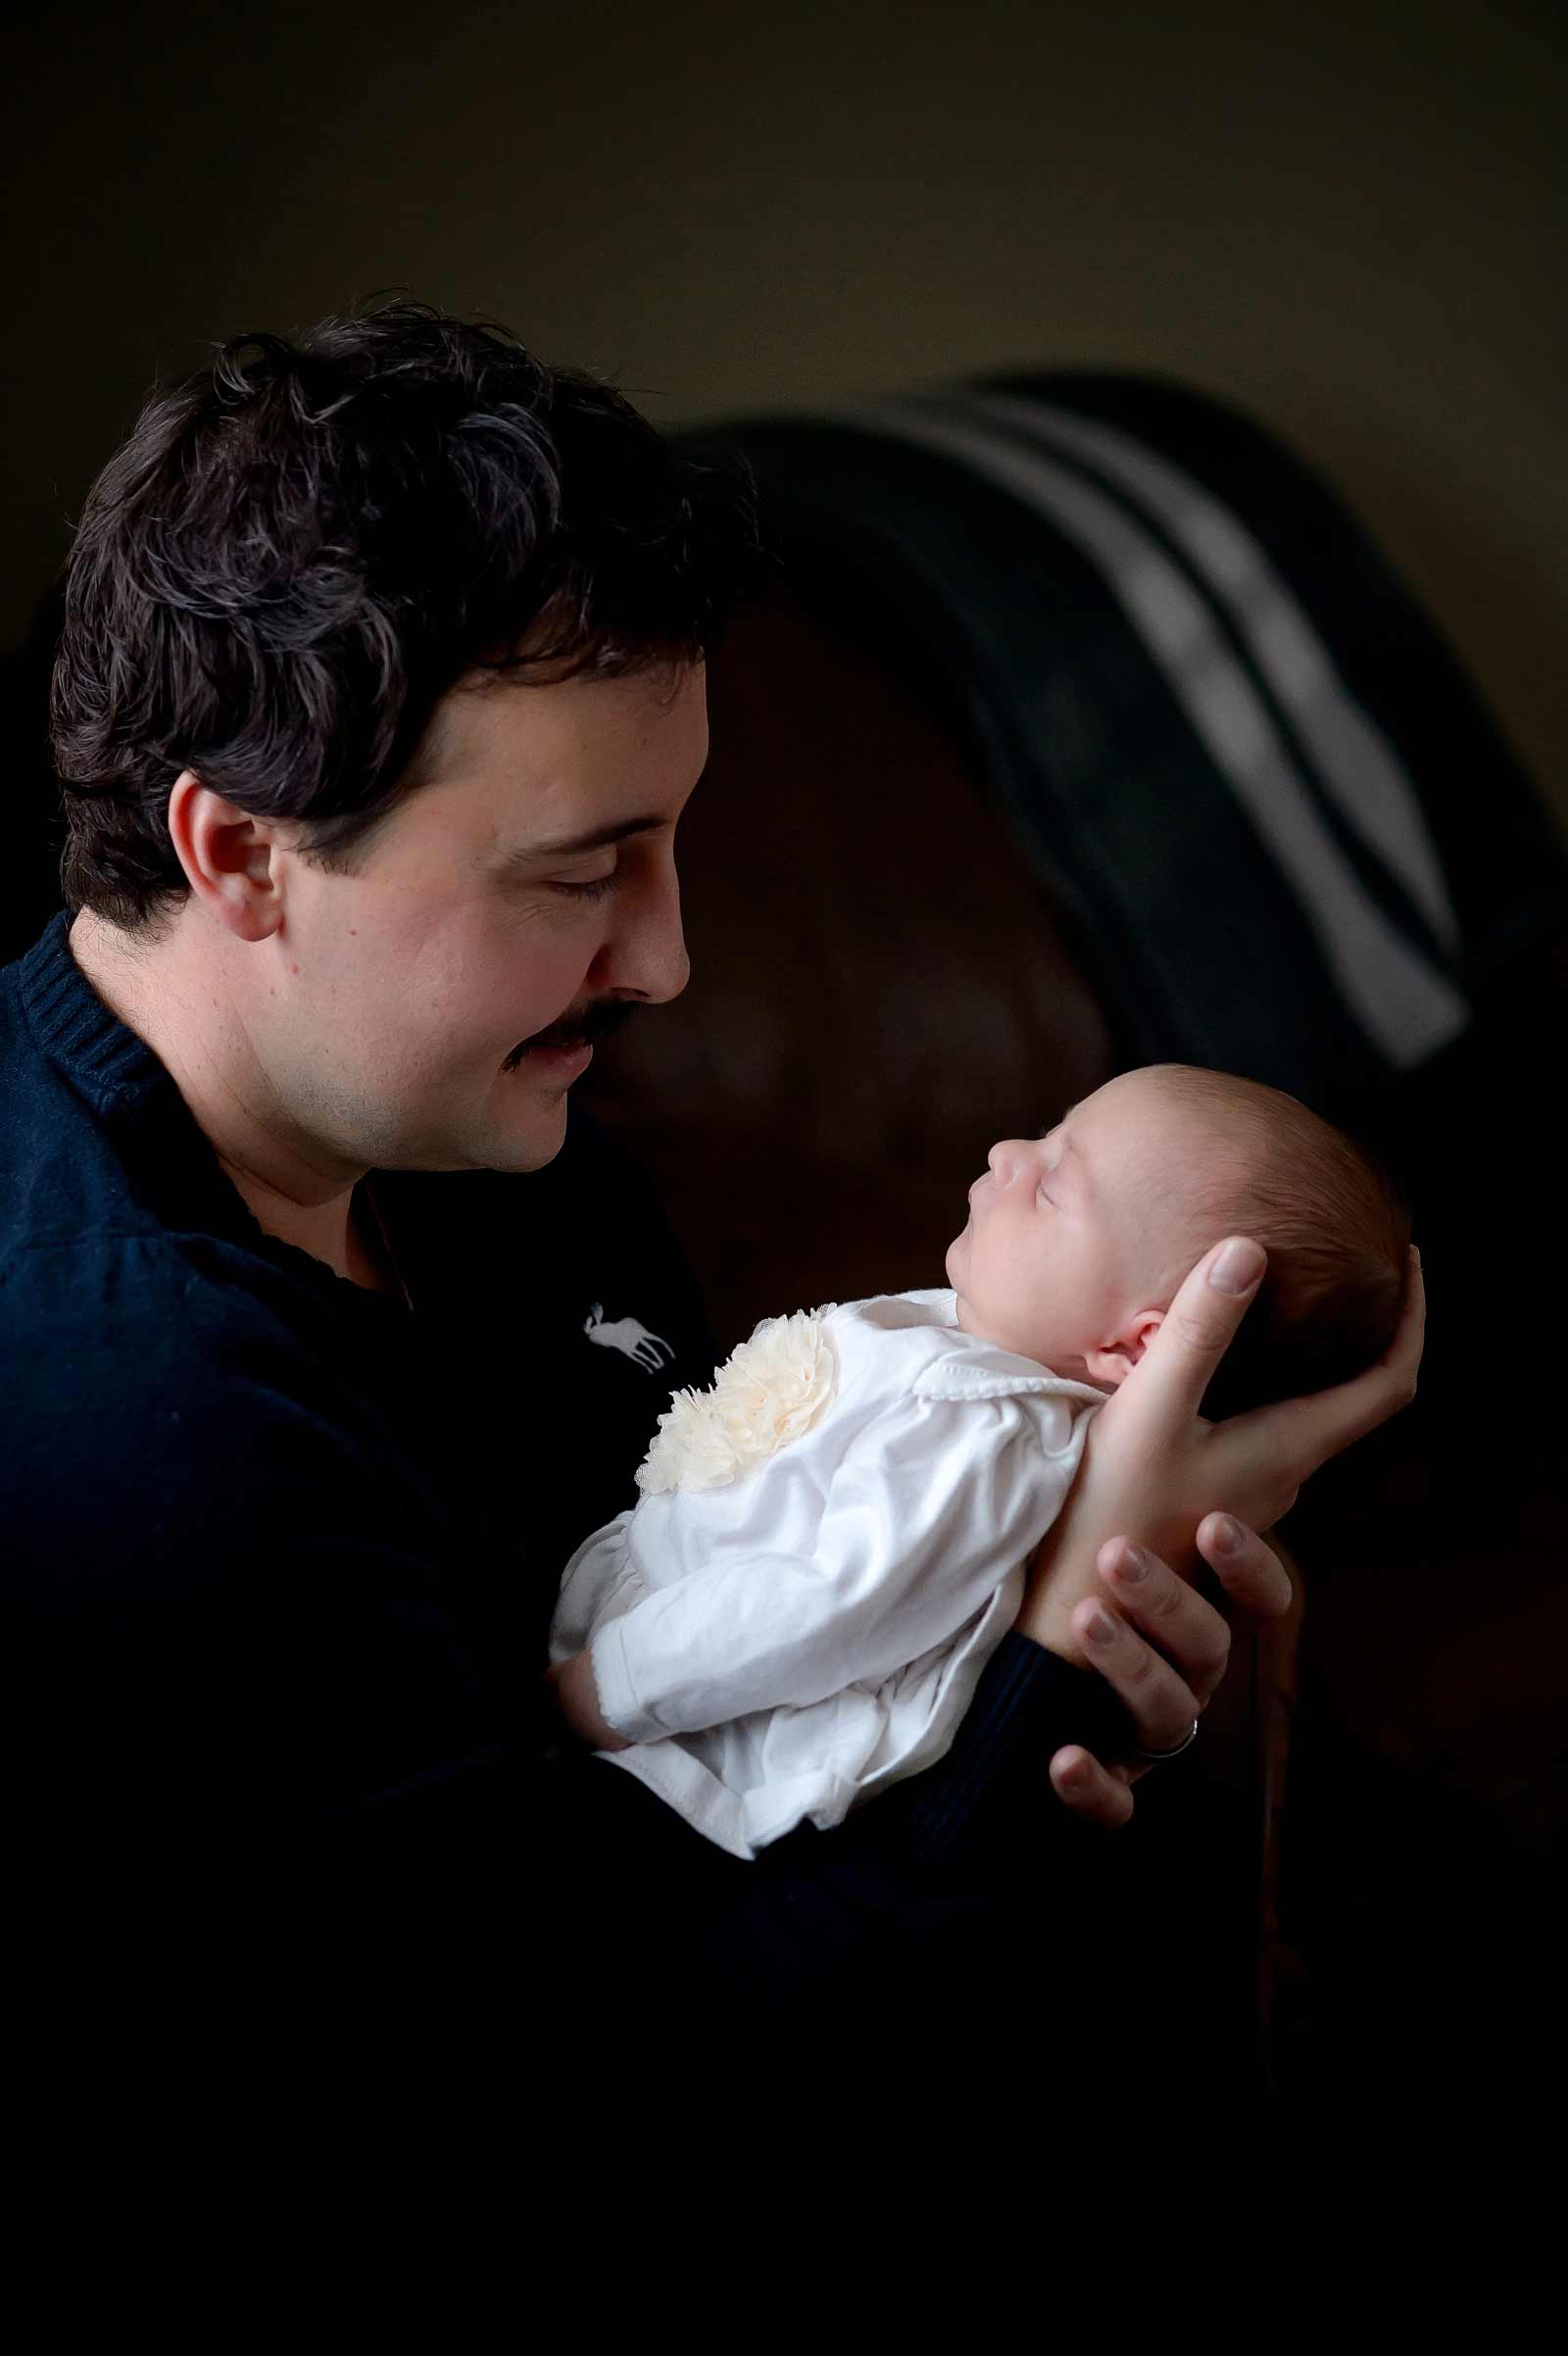 Baby Maeve being held by her Dad in Ottawa, Ontario